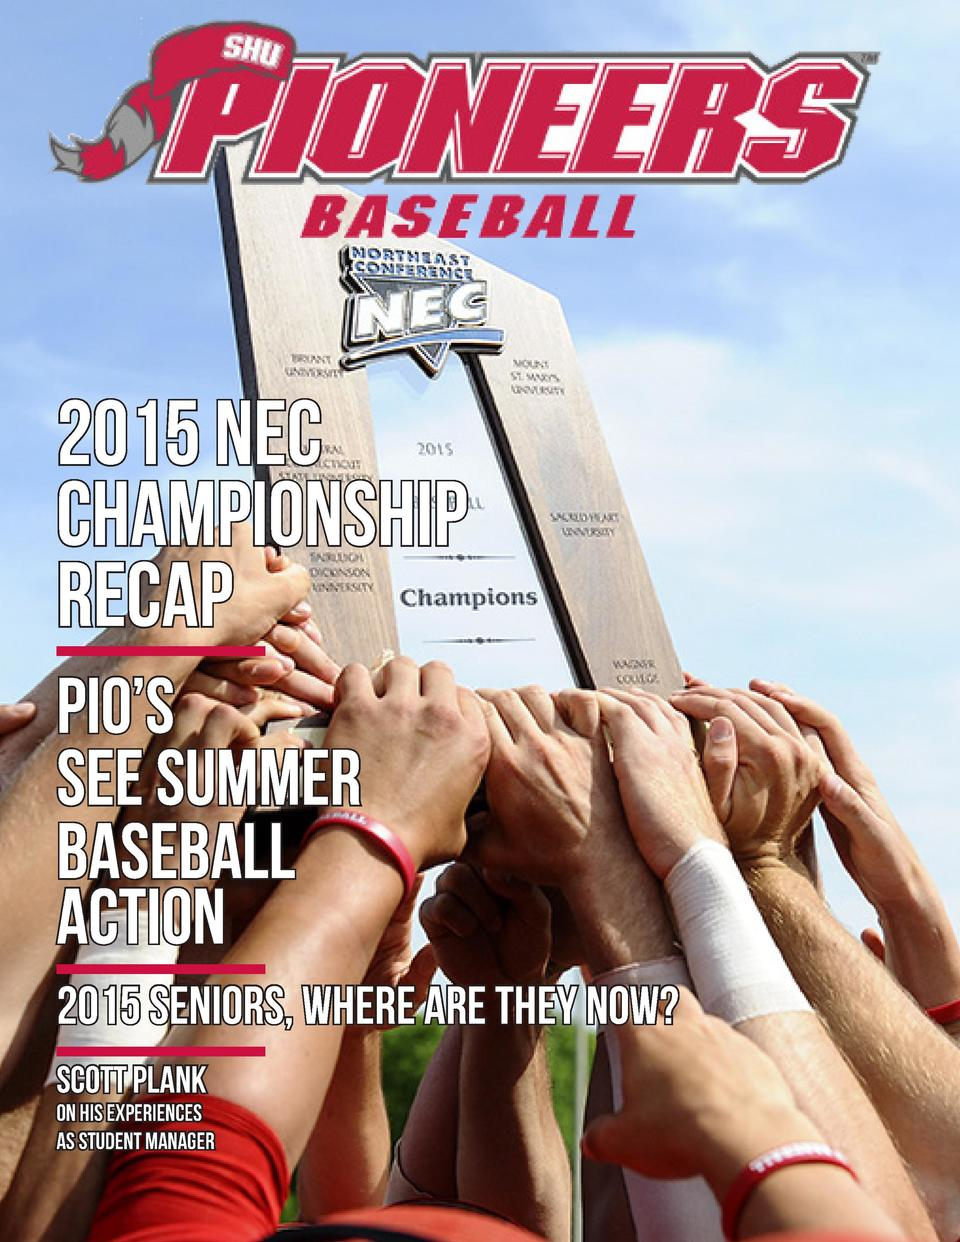 2015 NEC Championship Recap Pio   s See Summer Baseball Action 2015 Seniors, Where are they now  Scott Plank on his experi...